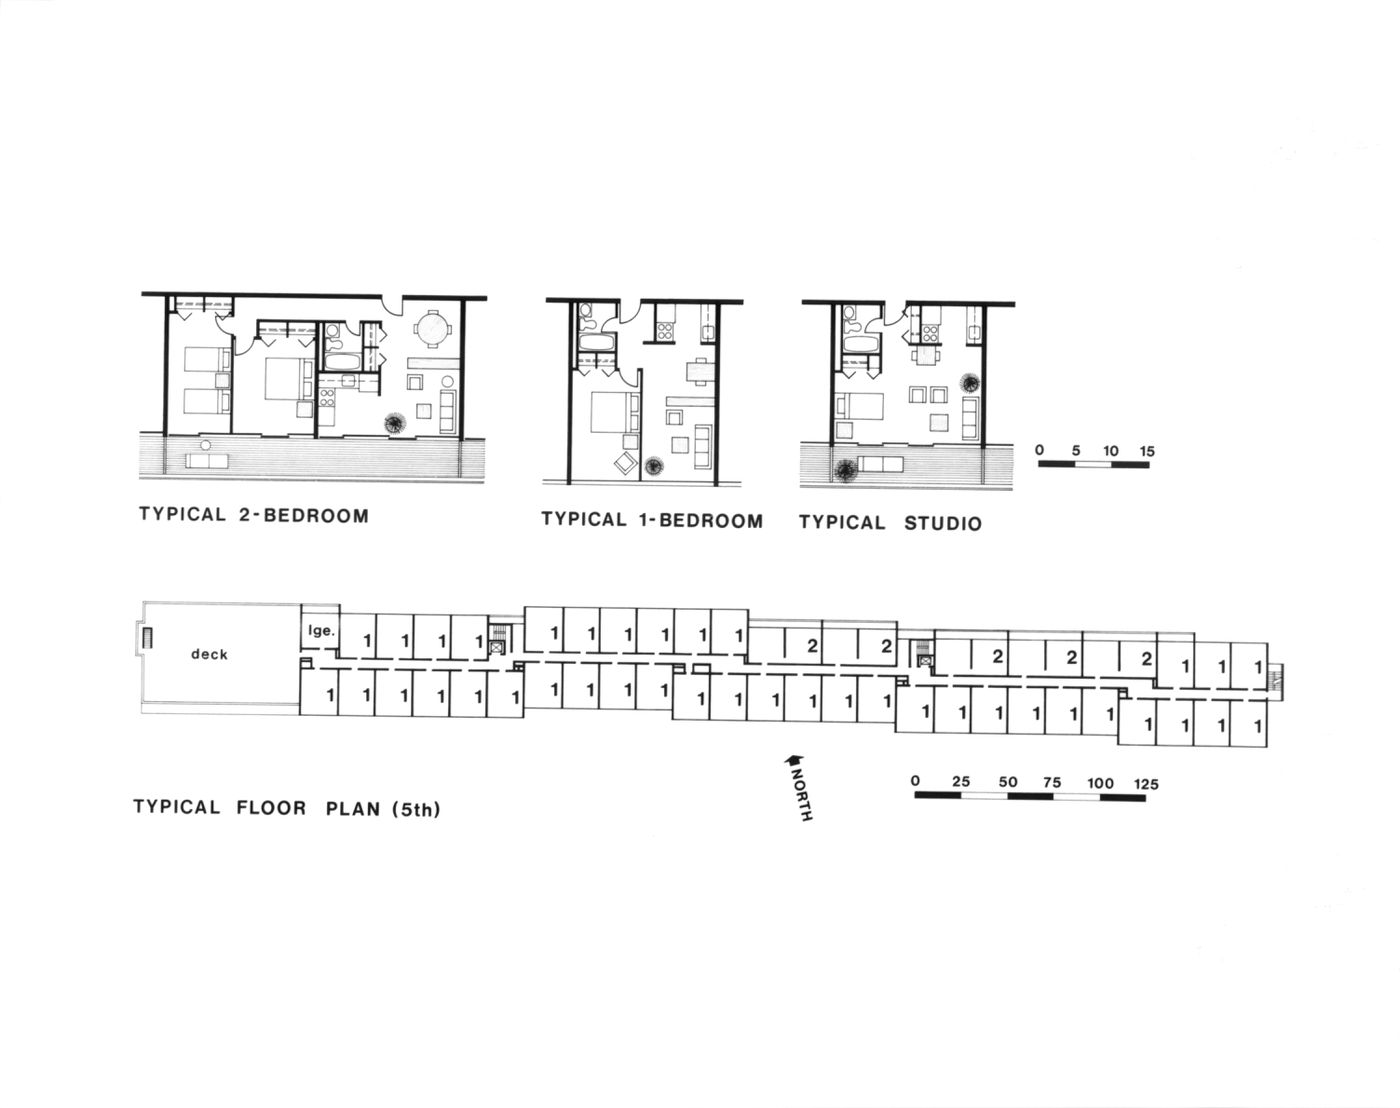 Typical floor plan (5th), typical bedroom and studio plans